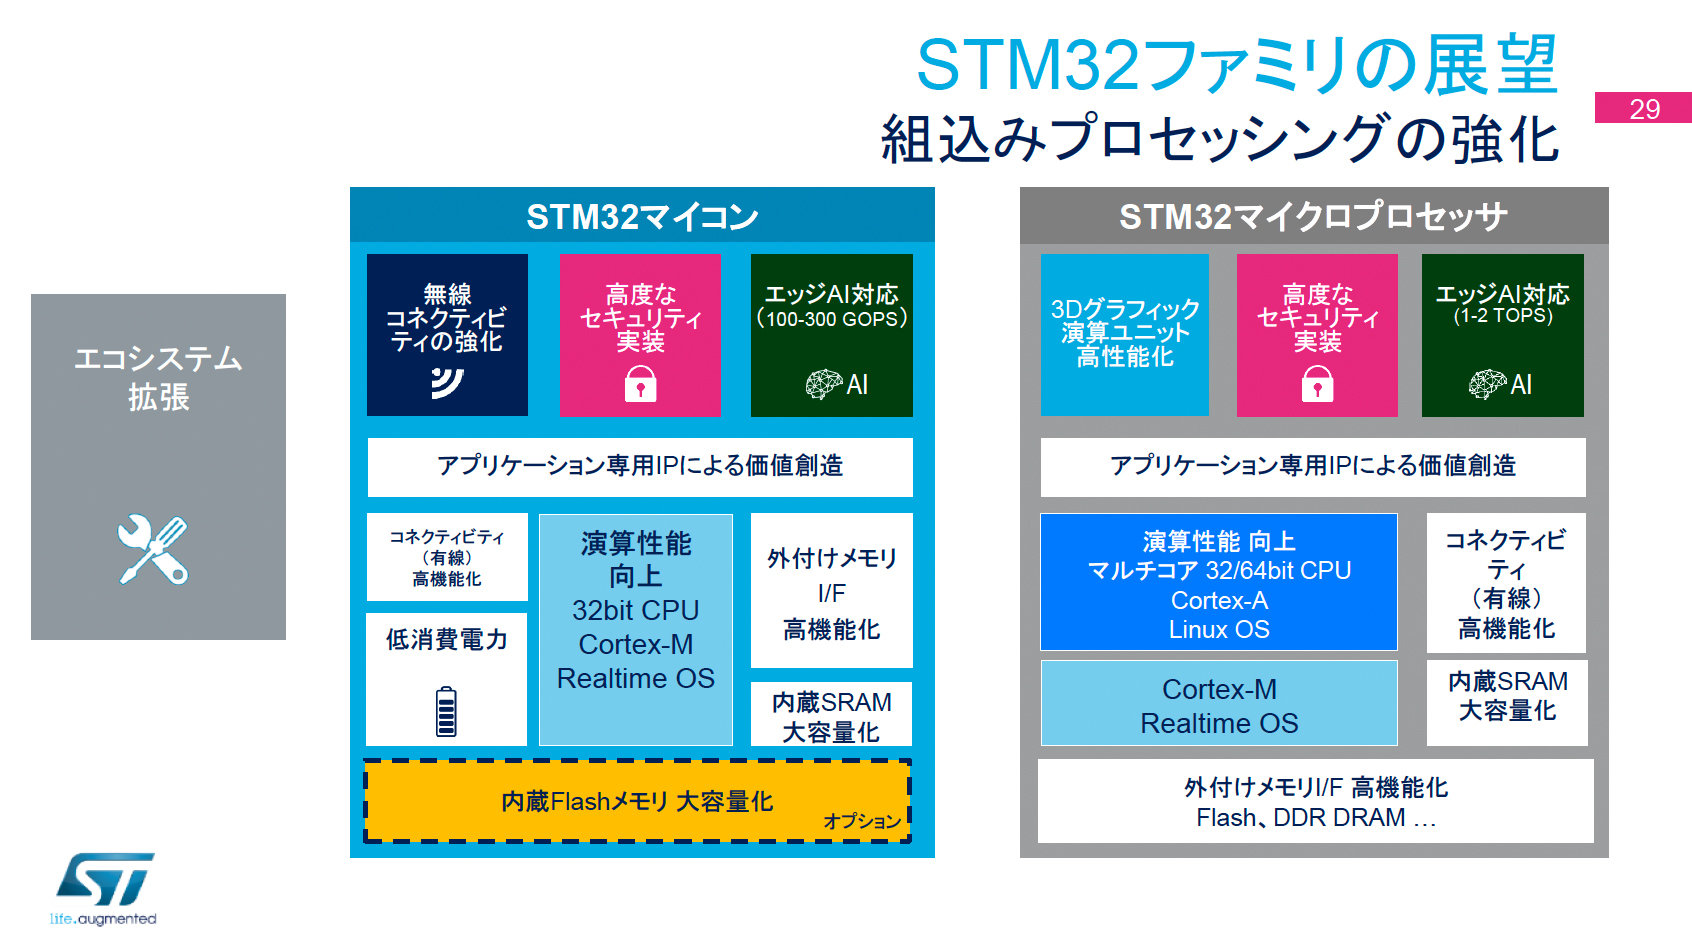 STM32MCUとSTM32マイクロプロセッサ(出典:STM)